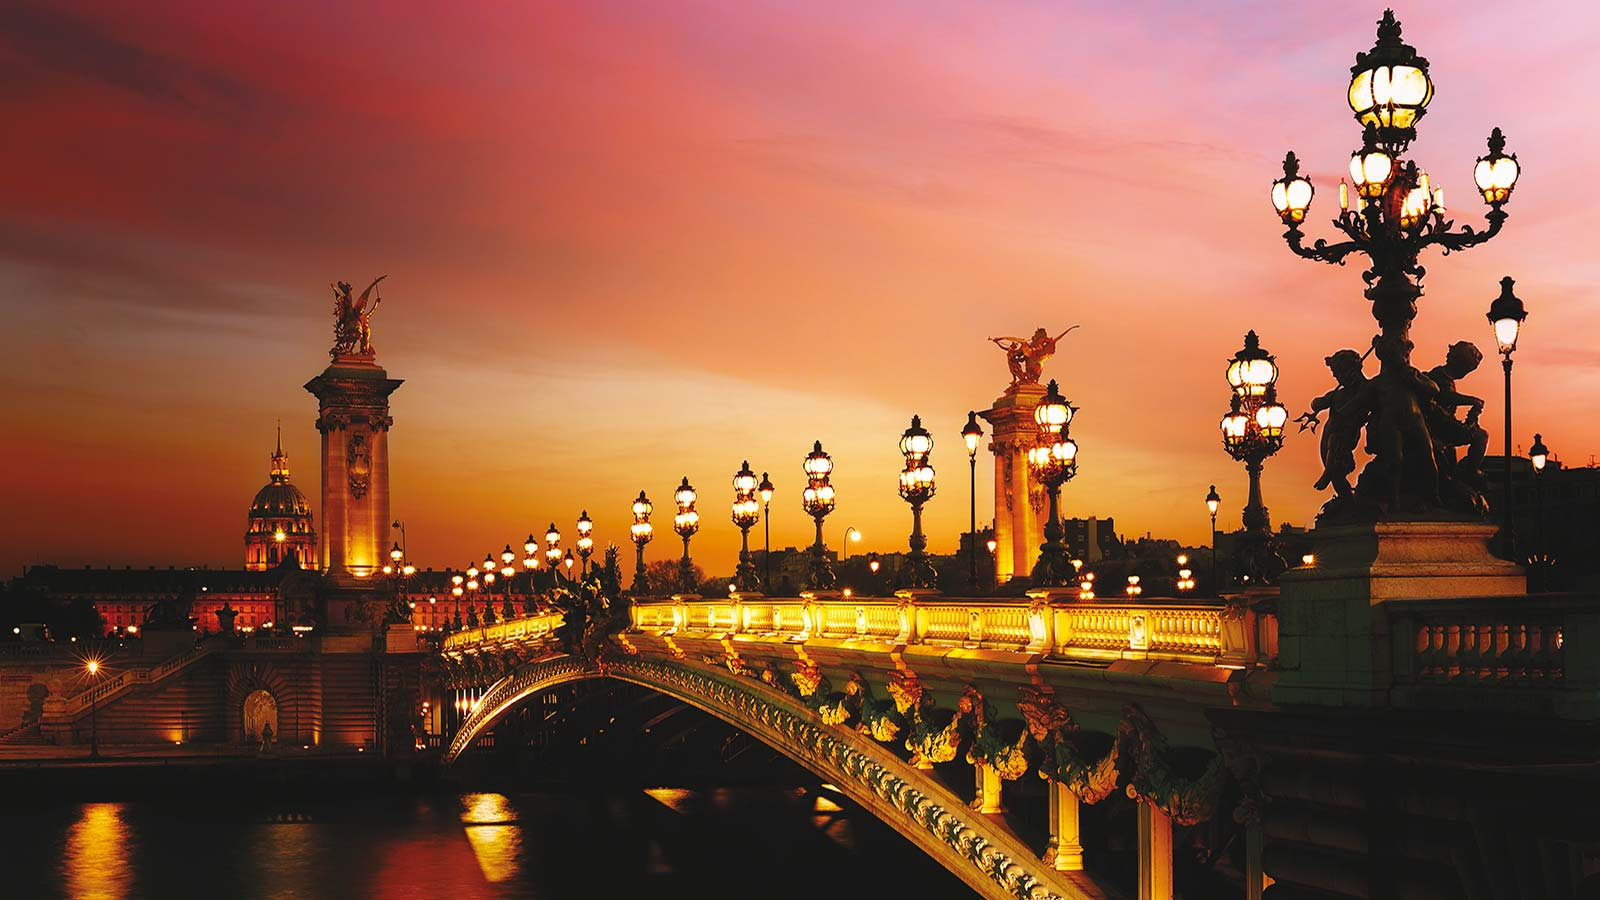 ¿Qué hacer (diferente) en una escapada romántica en París? / Something special to do on a romantic getaway in Paris?